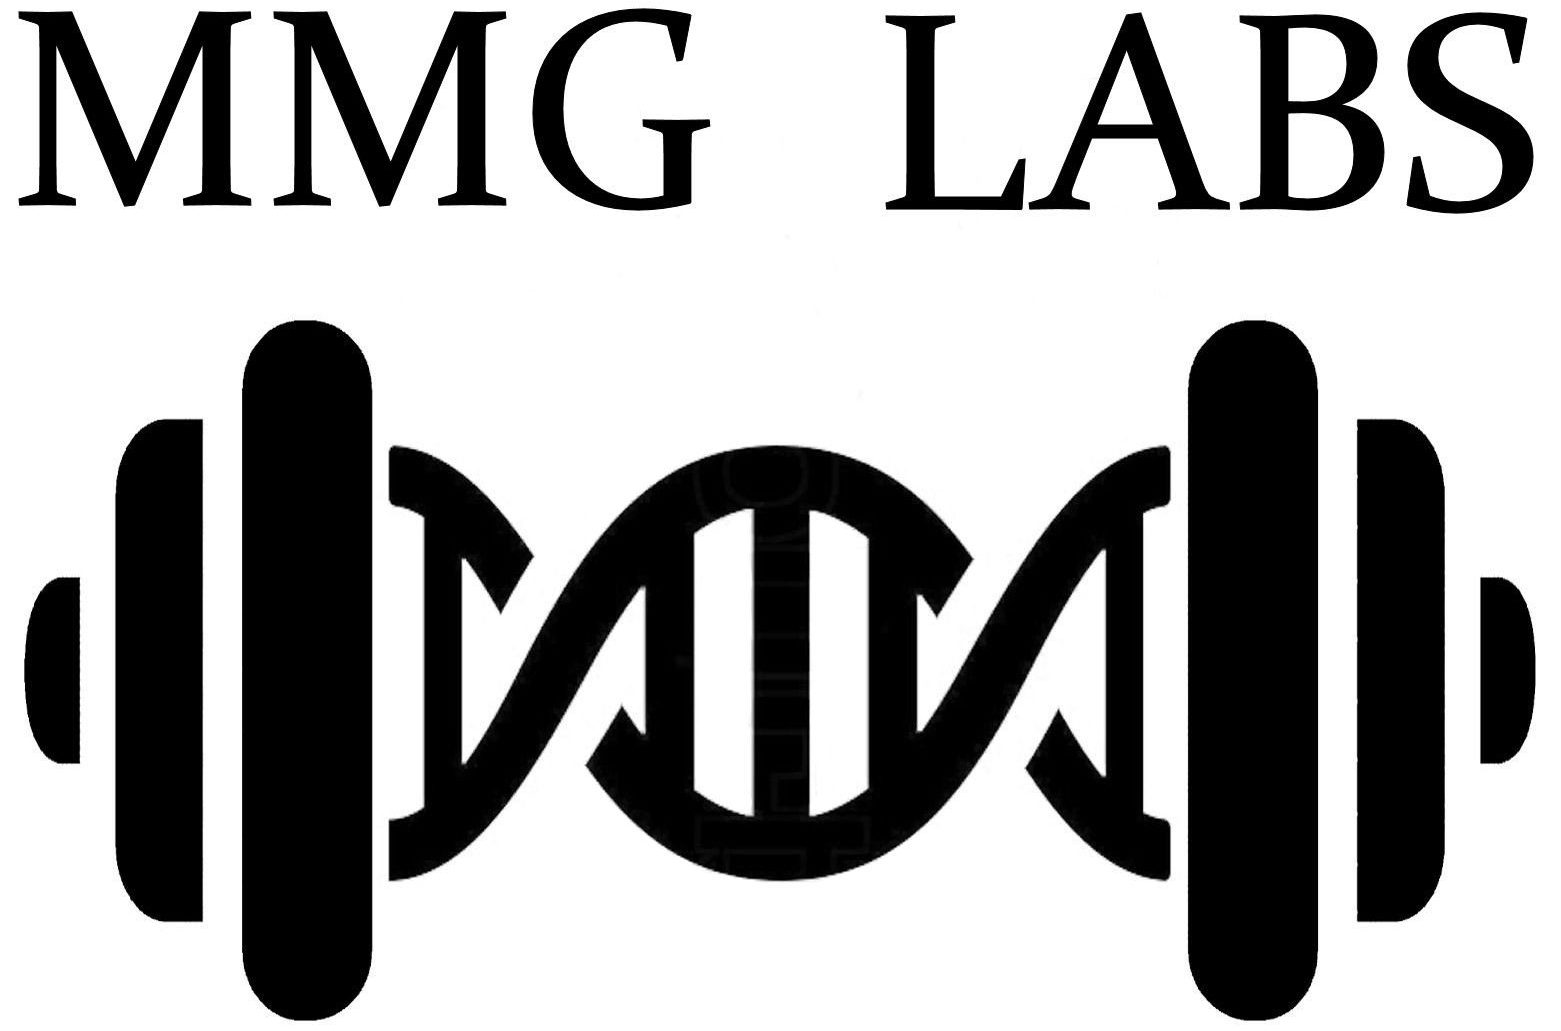 MMG LABS